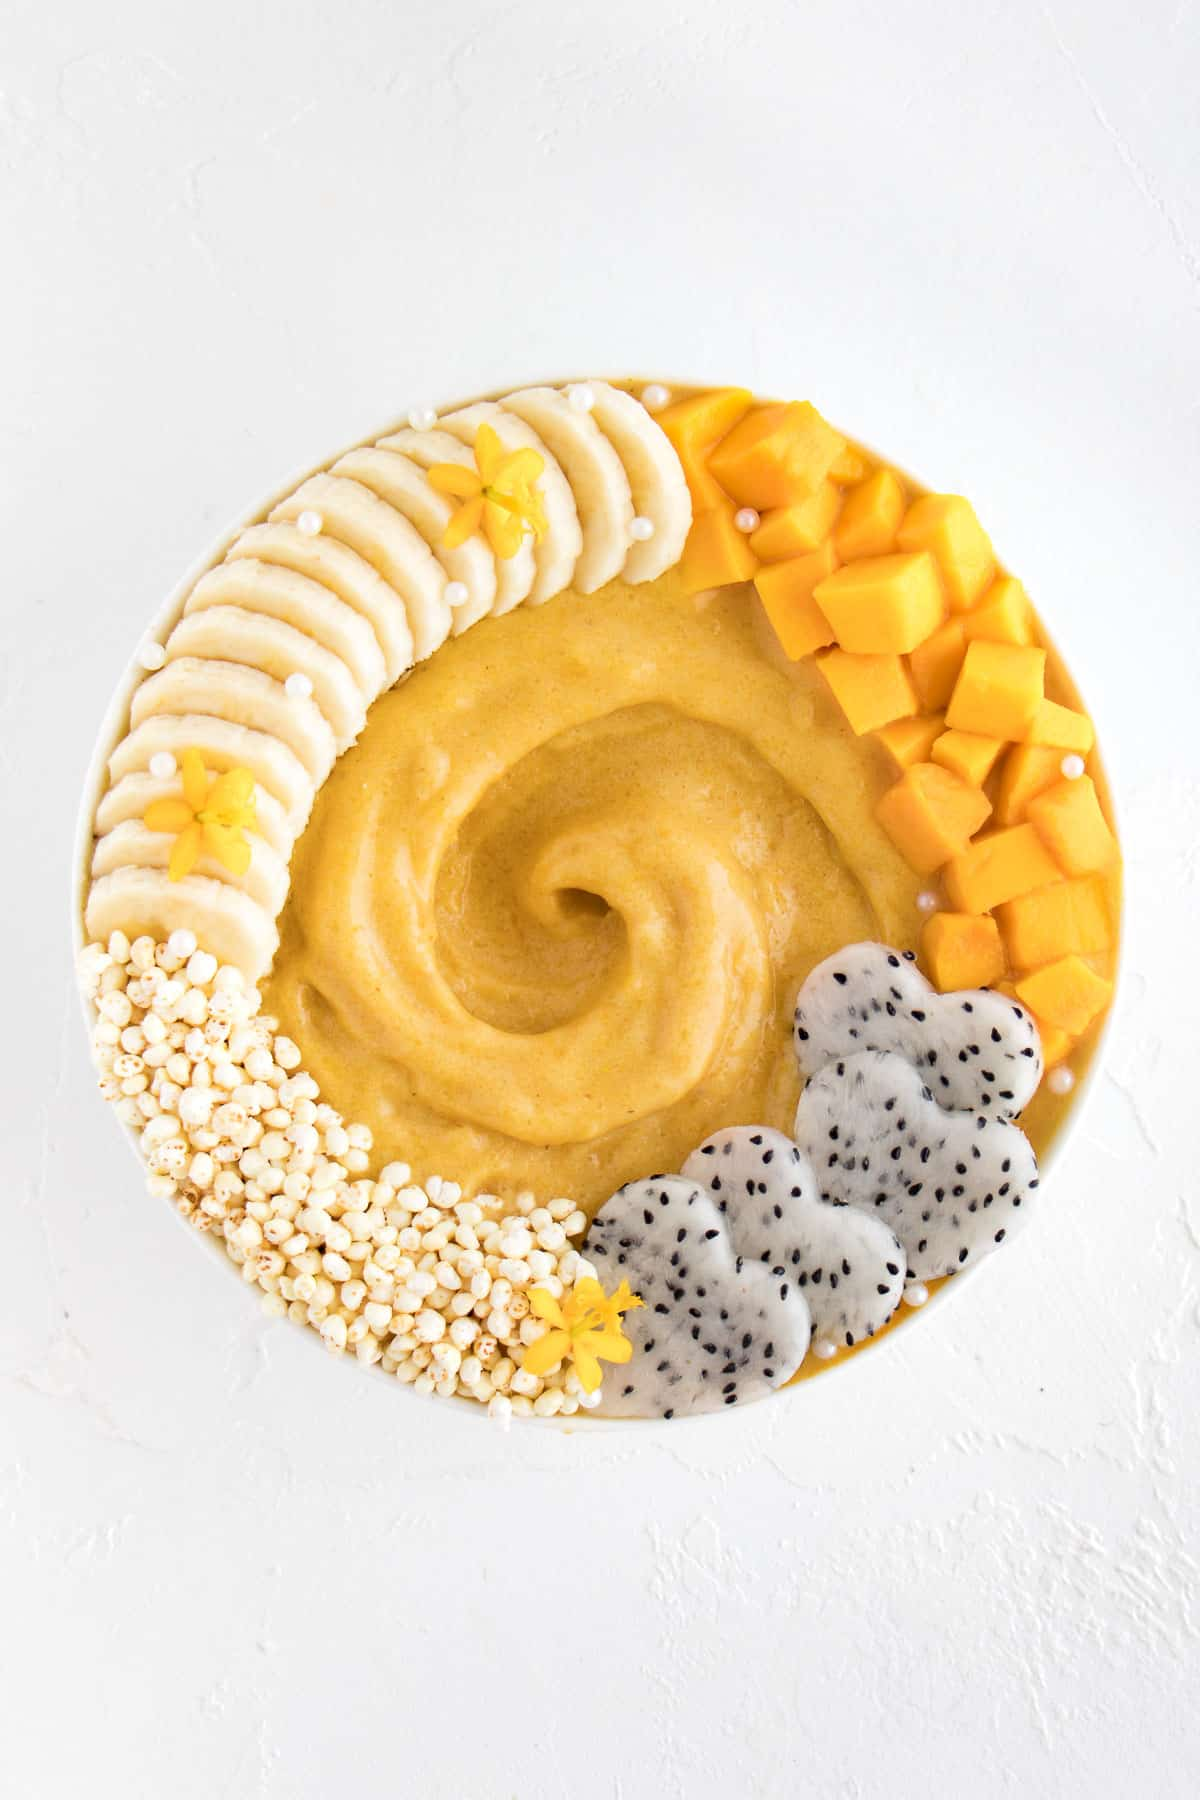 yellow smoothie in a bowl with mango, banana, and dragon fruit on top